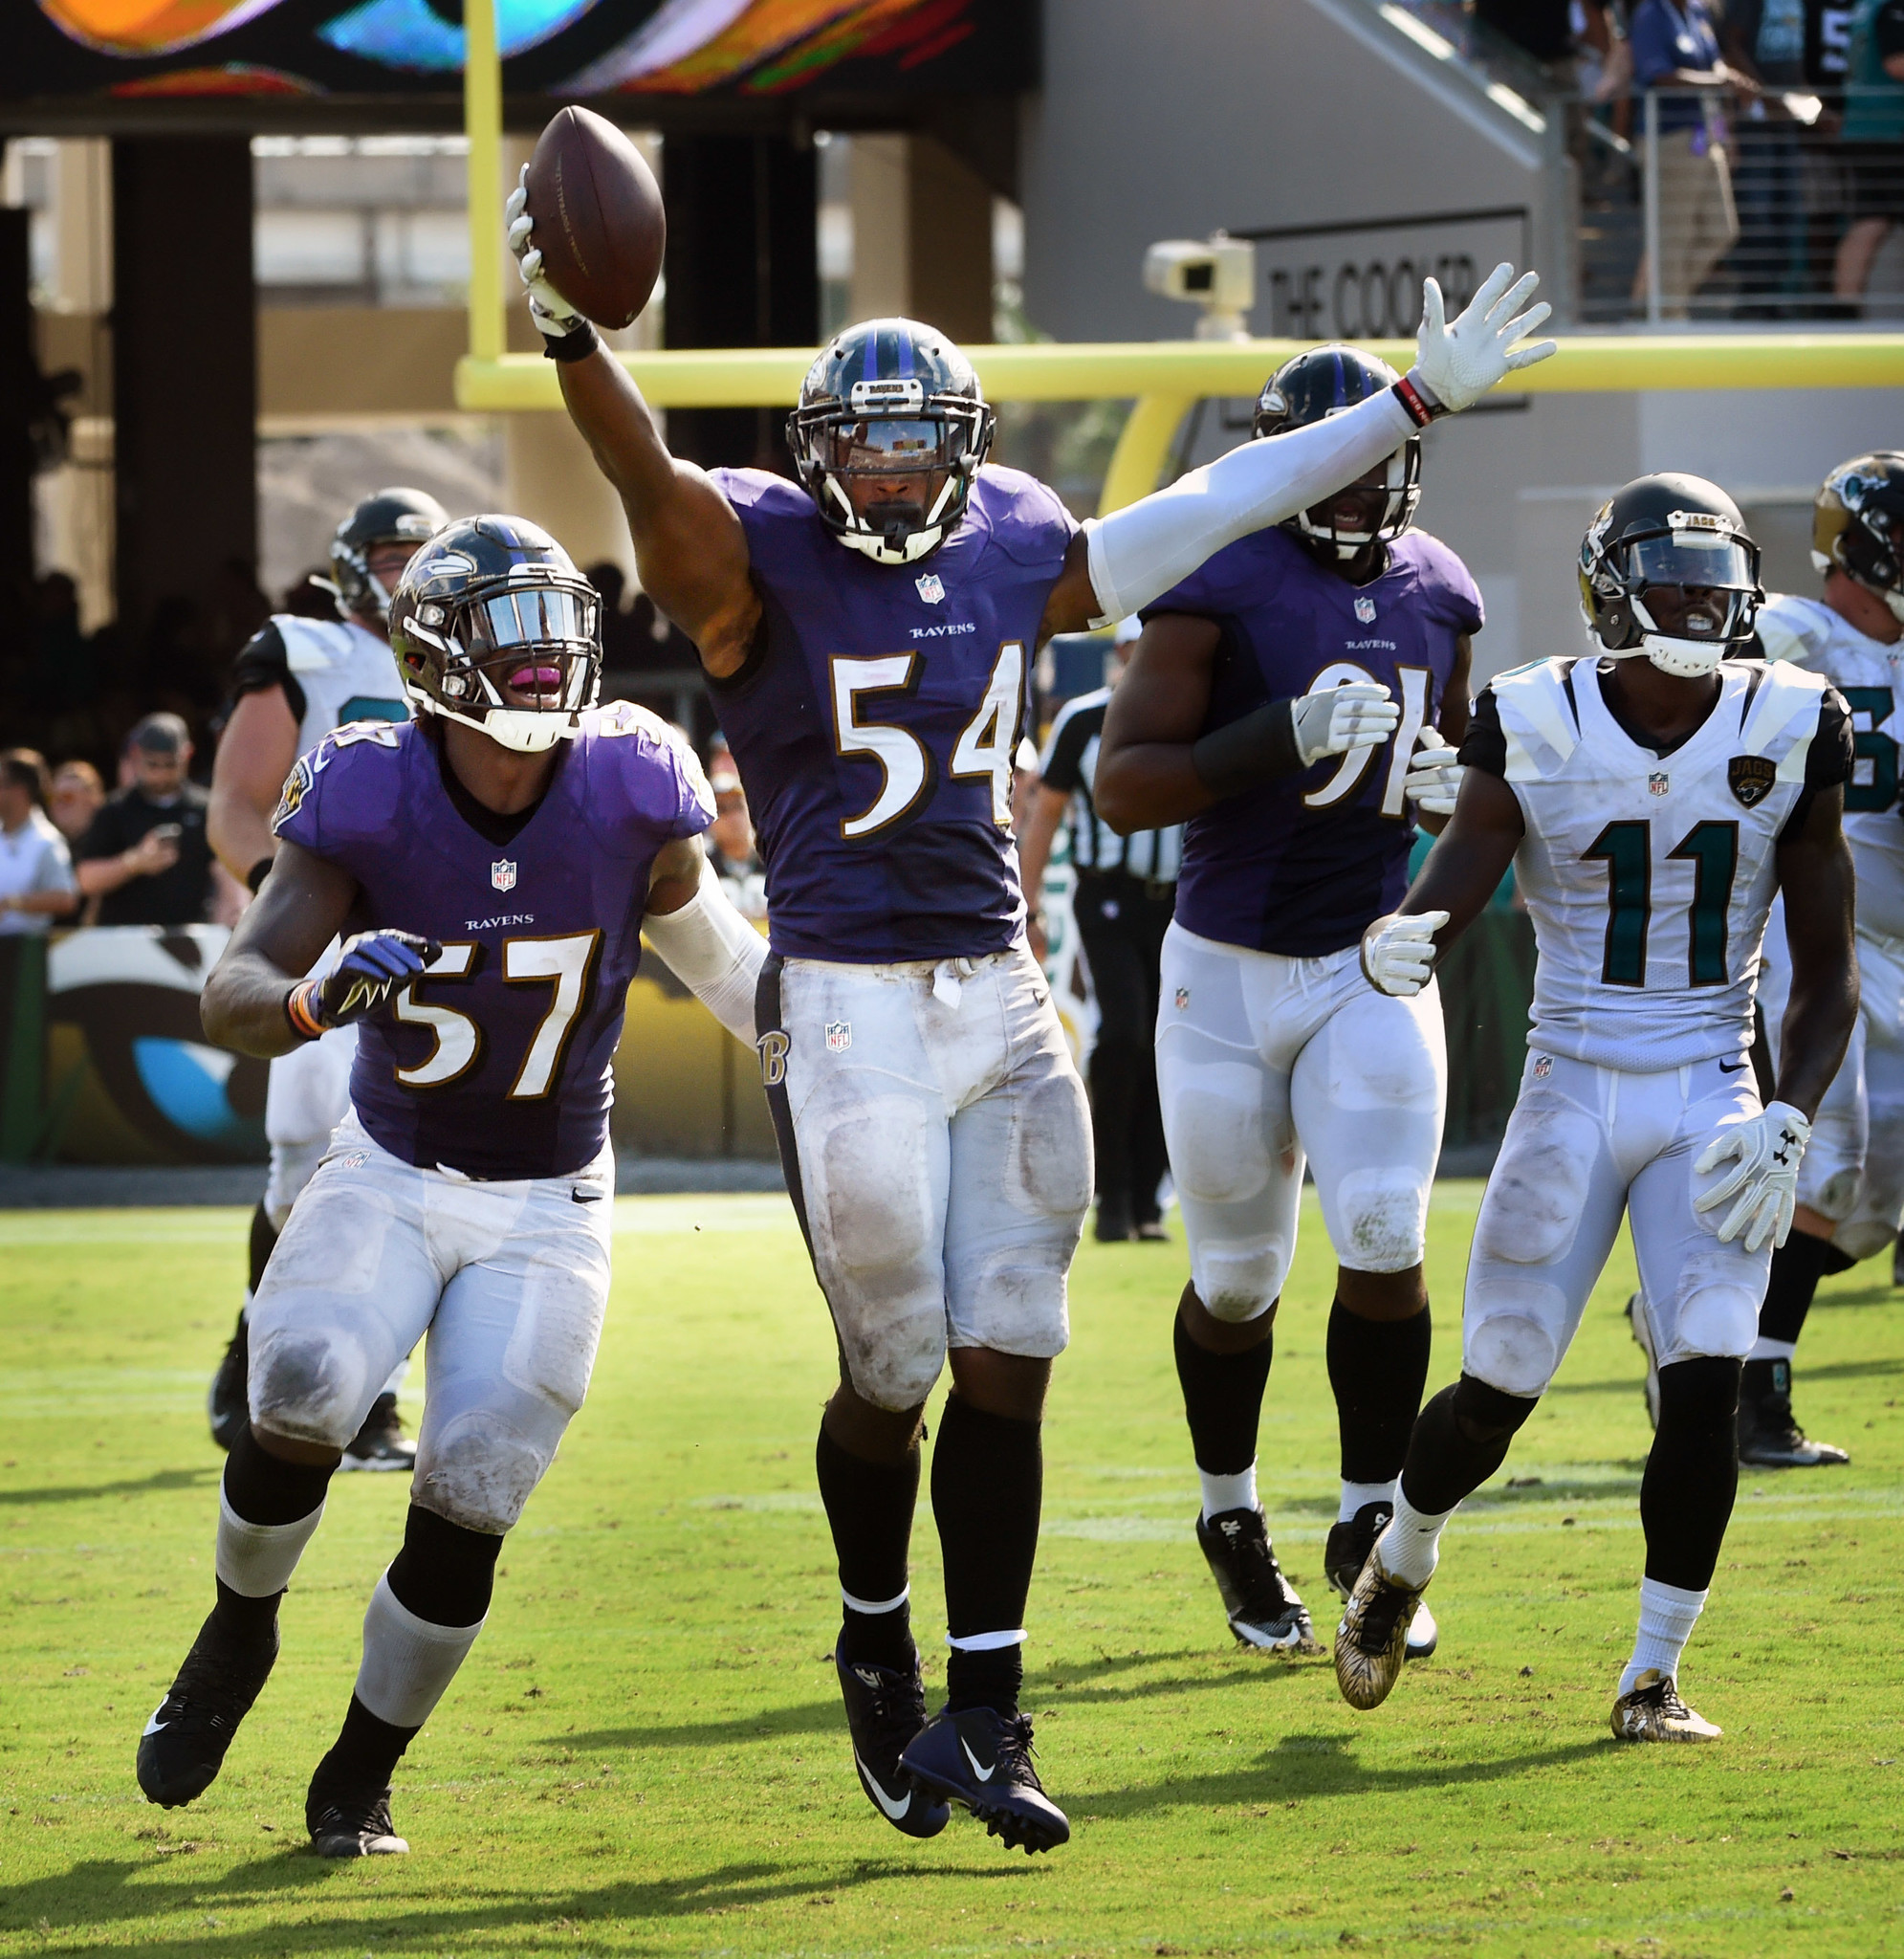 Bal-tied-for-12th-in-nfl-in-tackles-ravens-linebacker-zachary-orr-starting-to-make-name-for-himself-20161020